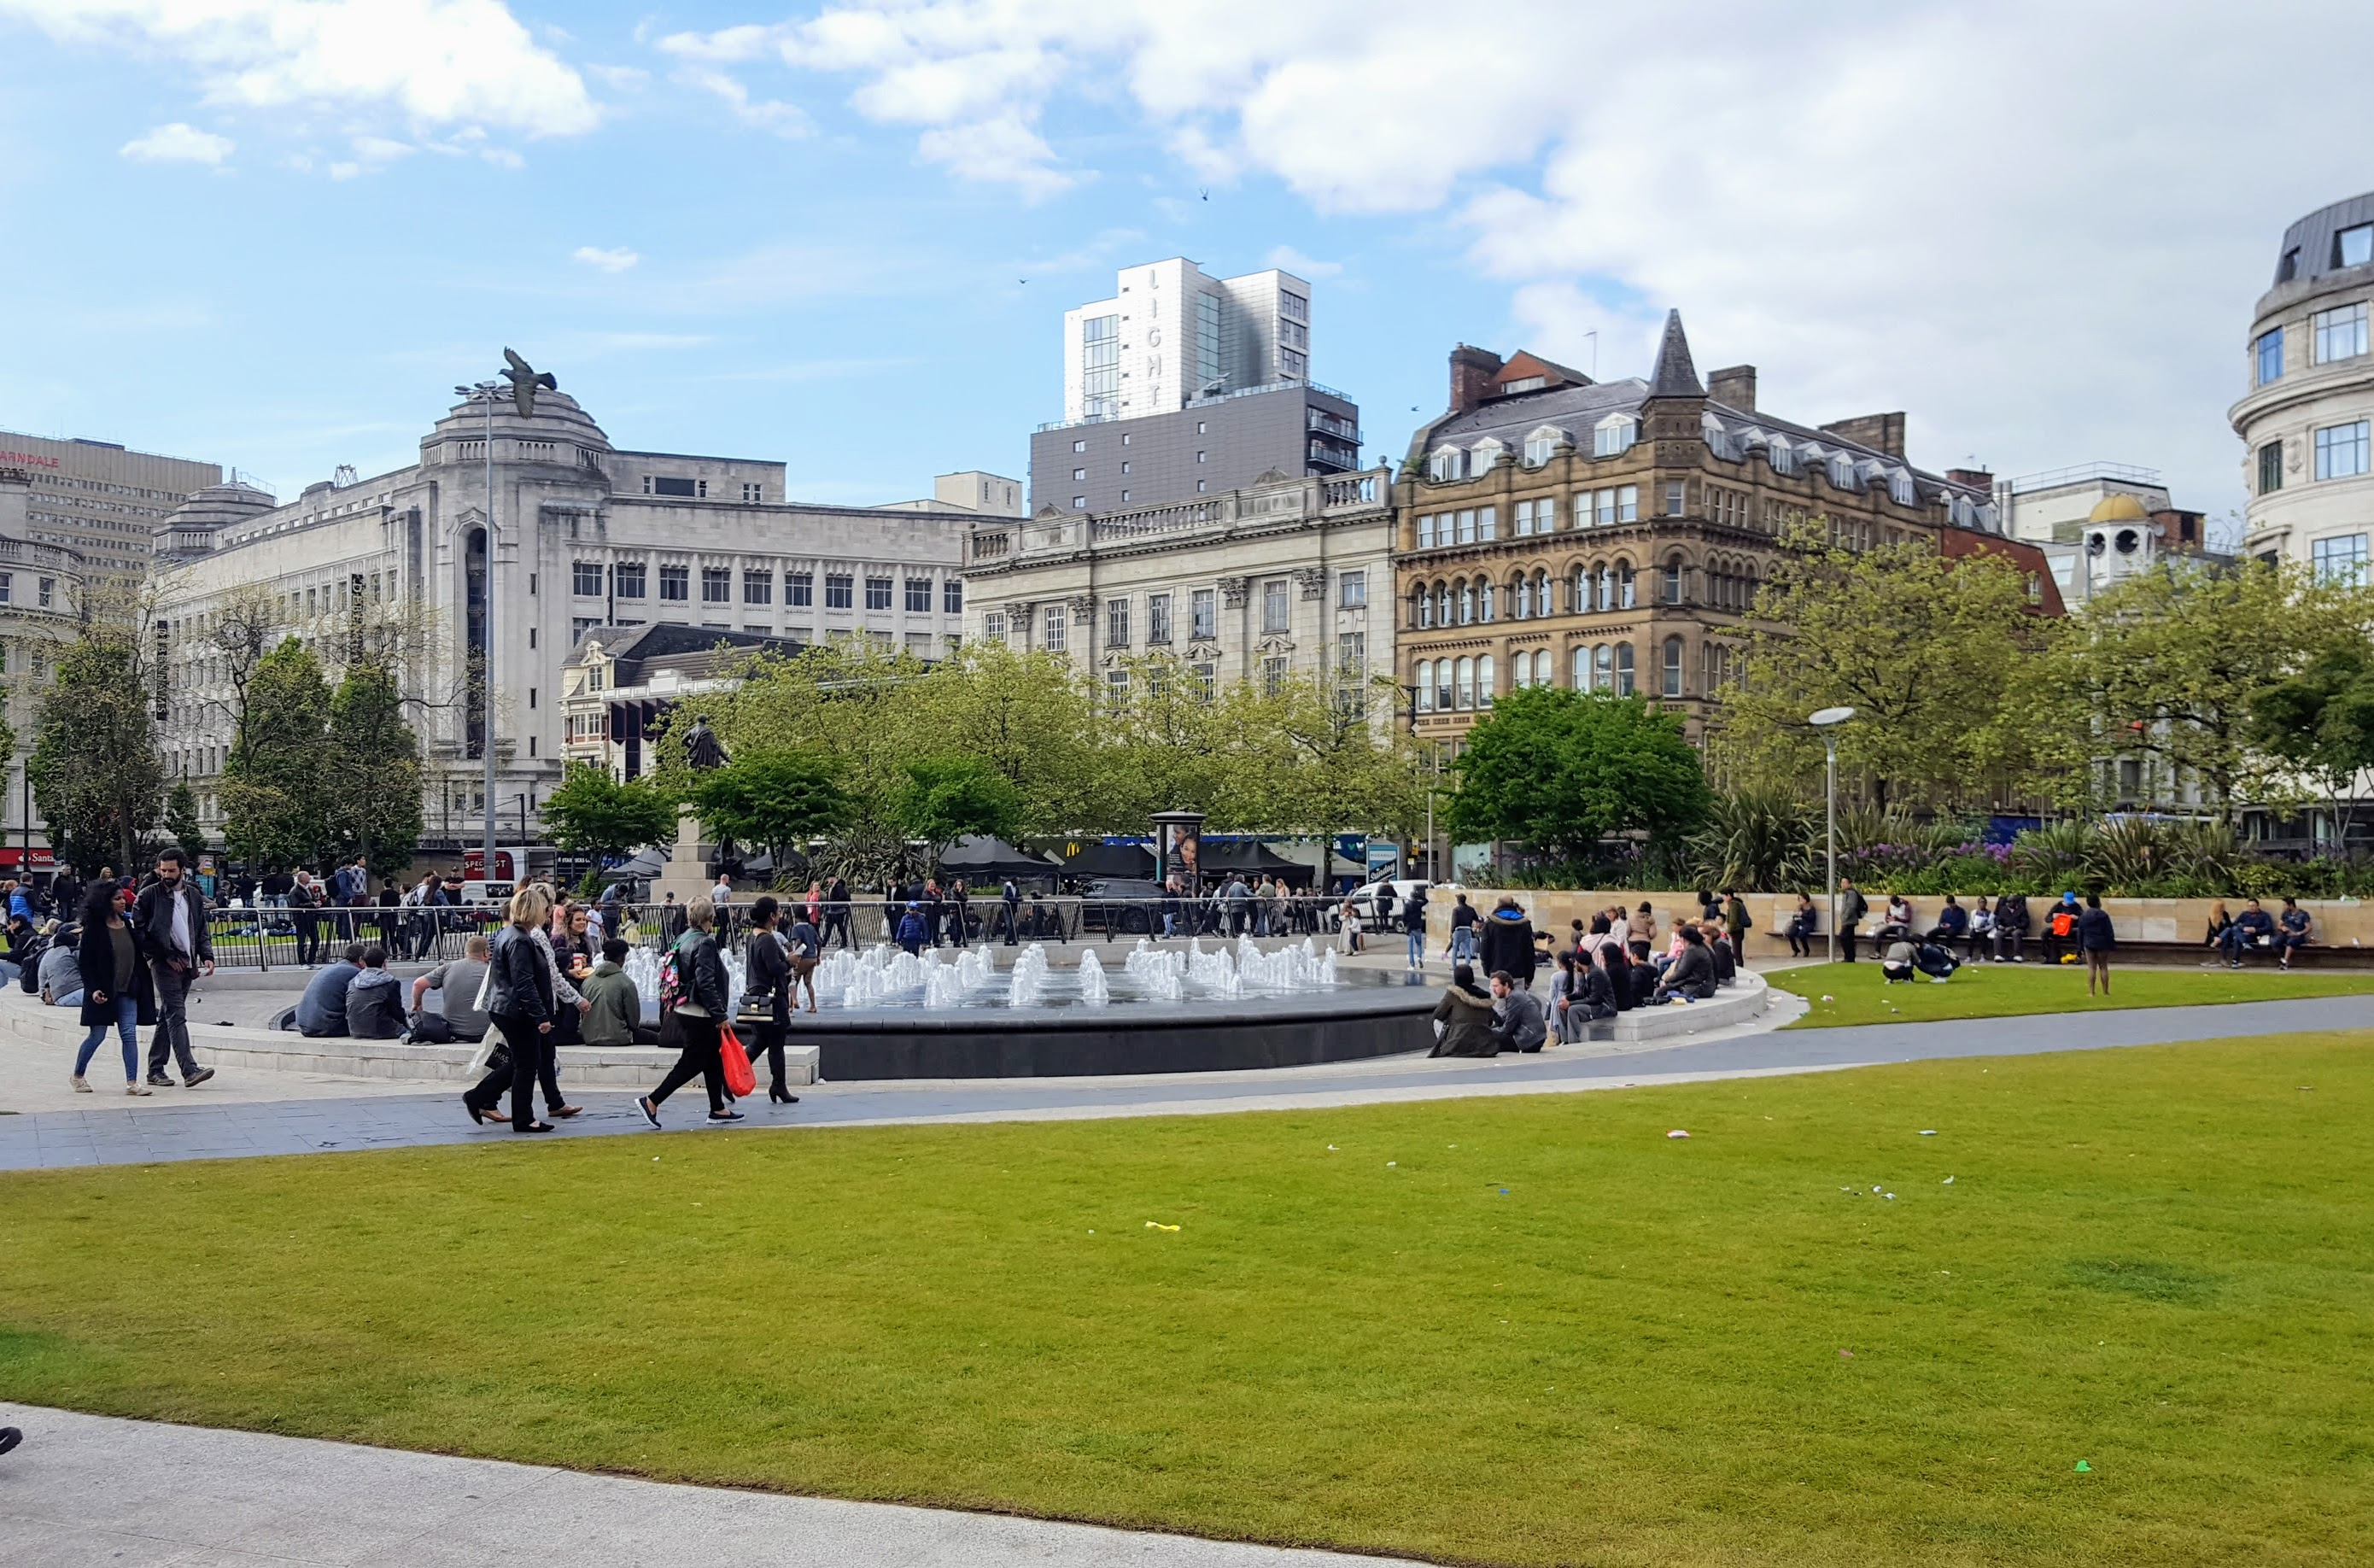 Manchester, North West, England – 1 Day Trip